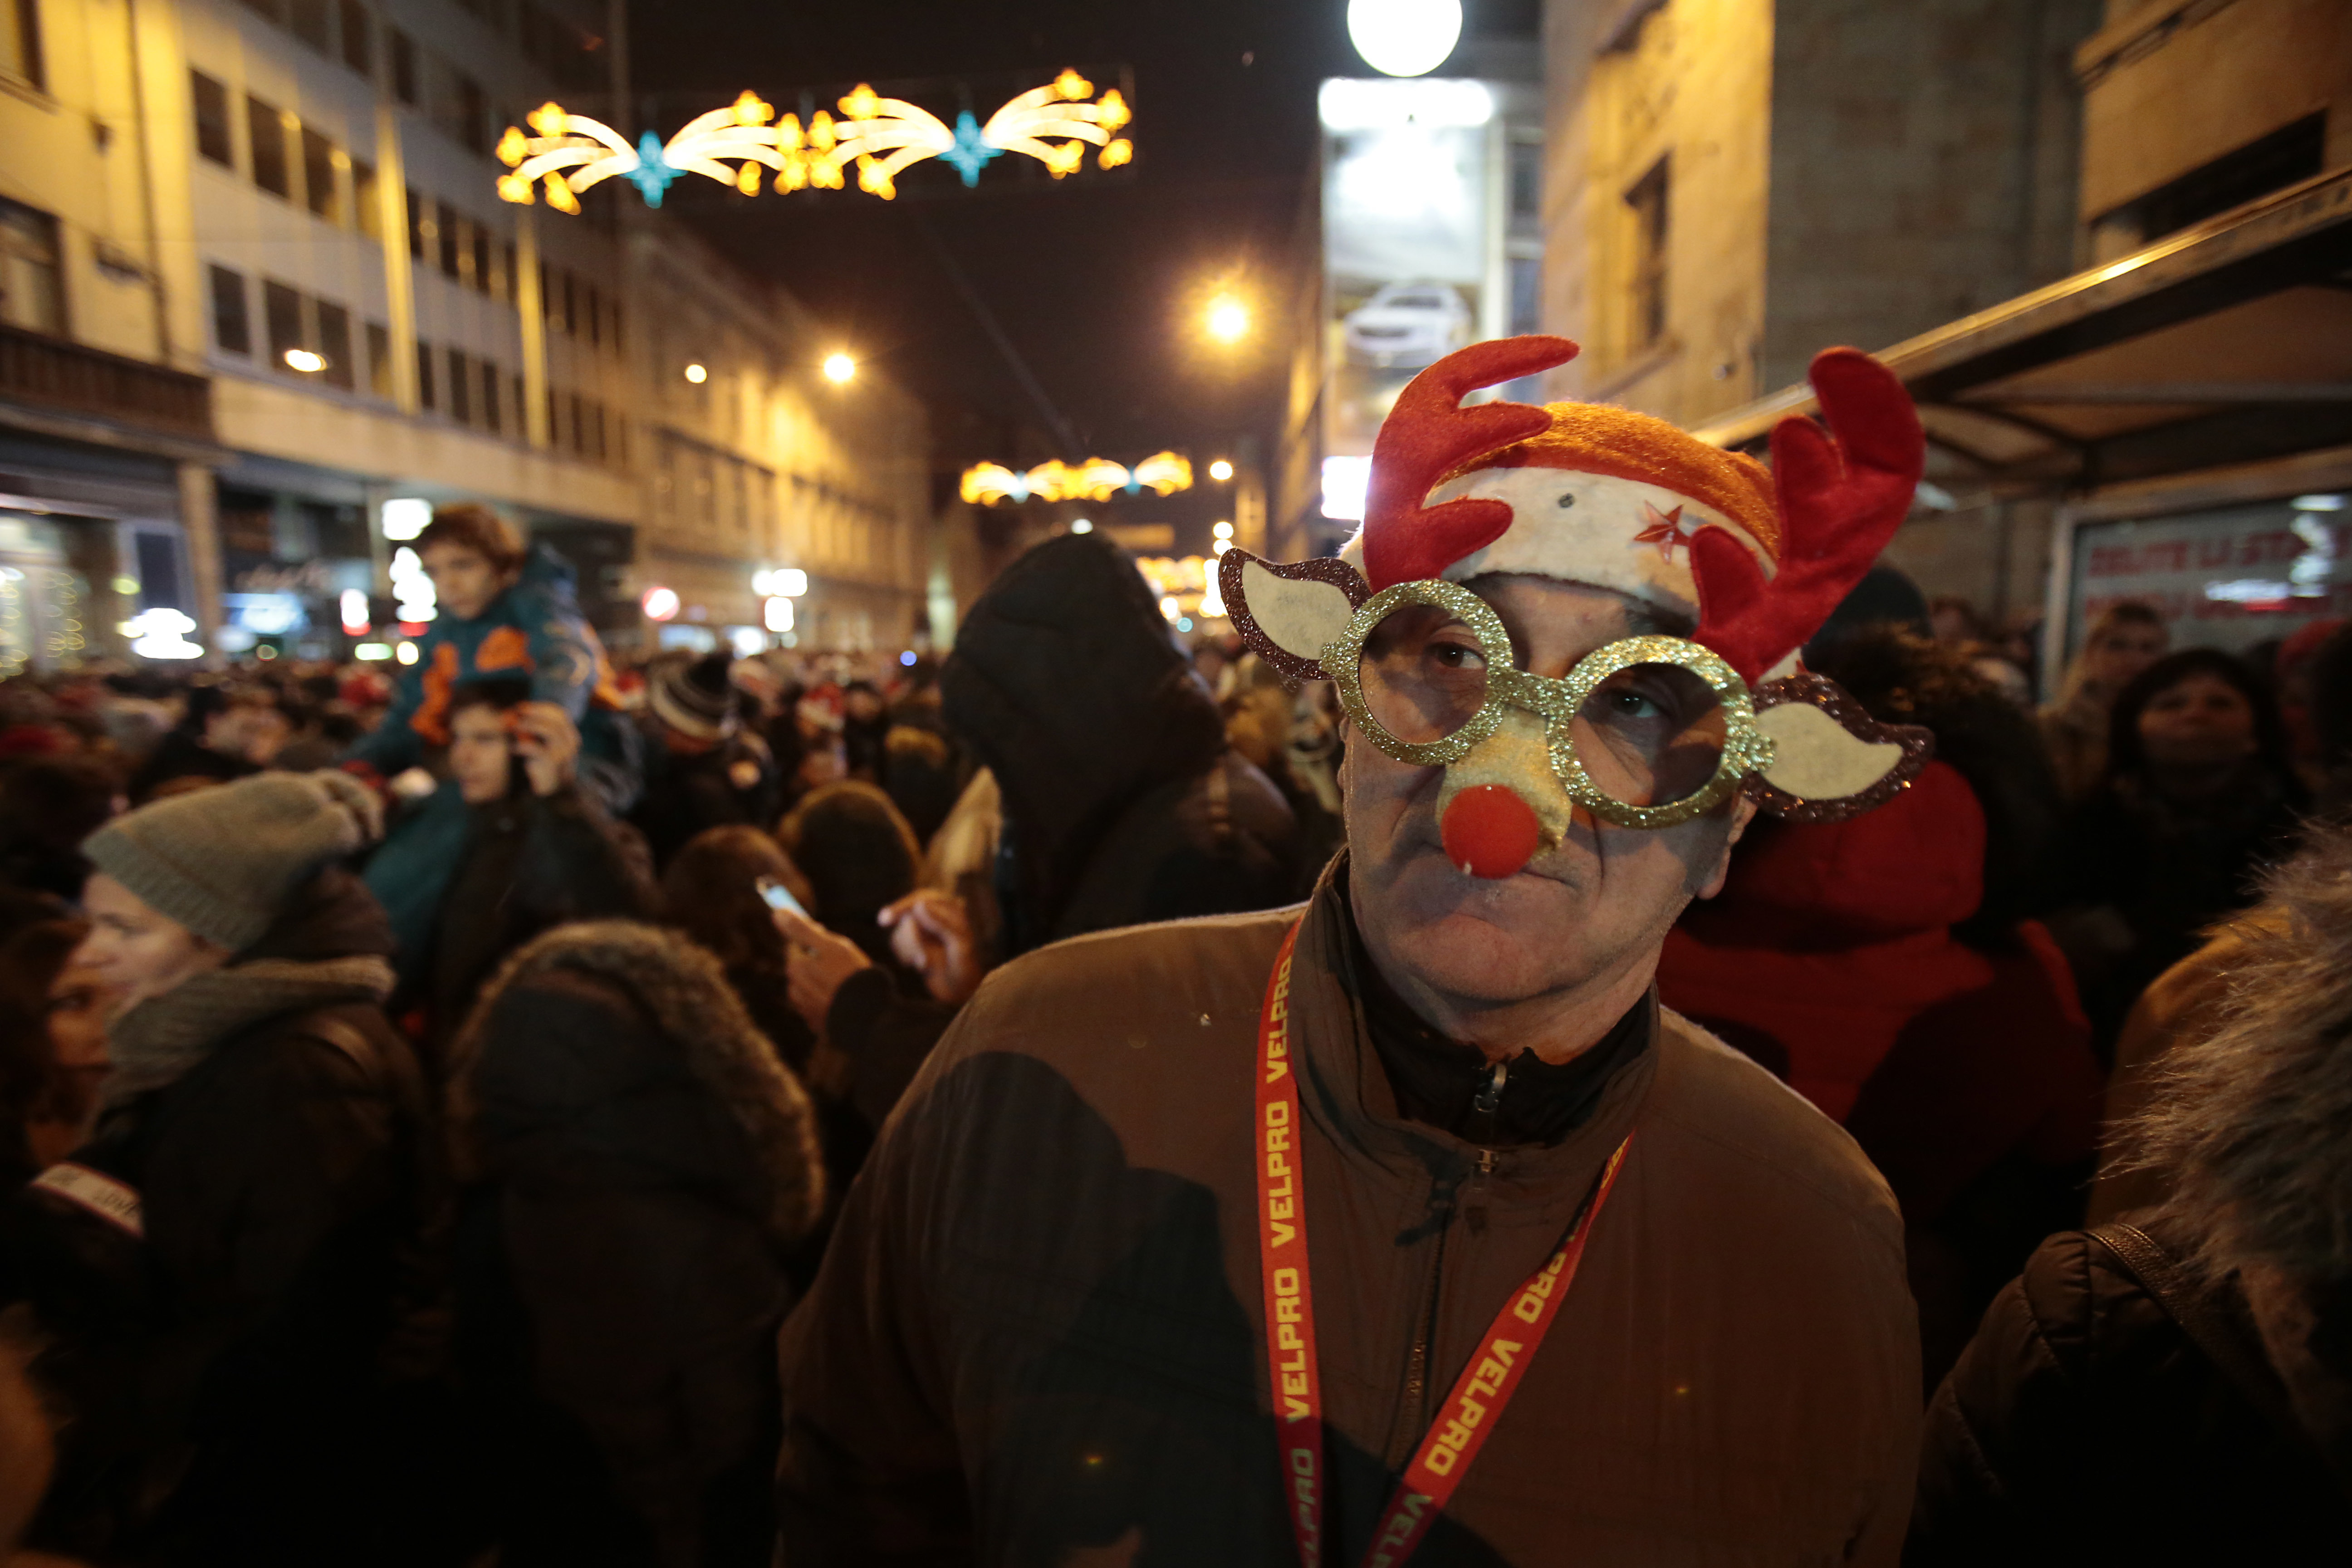 Bosnian people cheer during new year's celebrations in Sarajevo